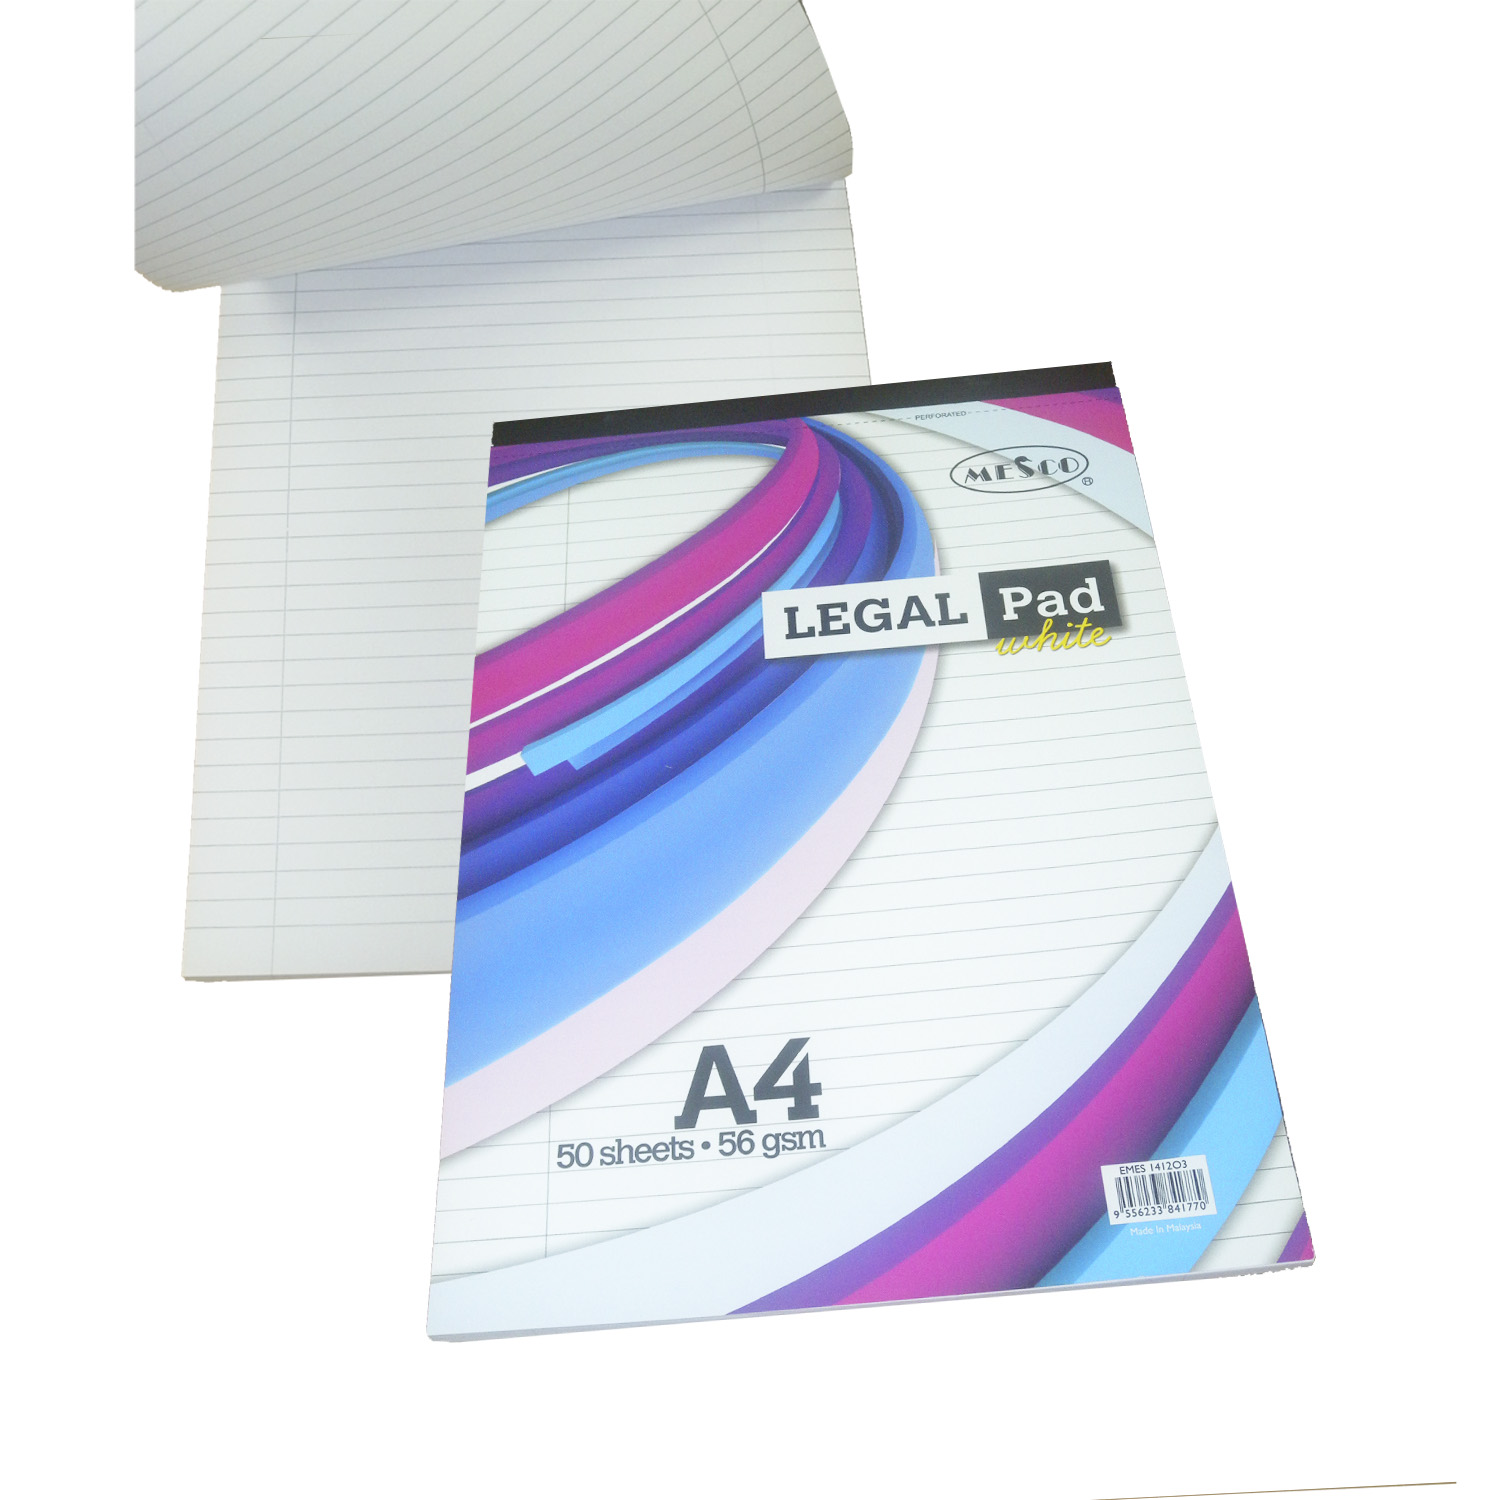 Mesco A4 Legal Pad 56gsm 50 sheets - White (pc)